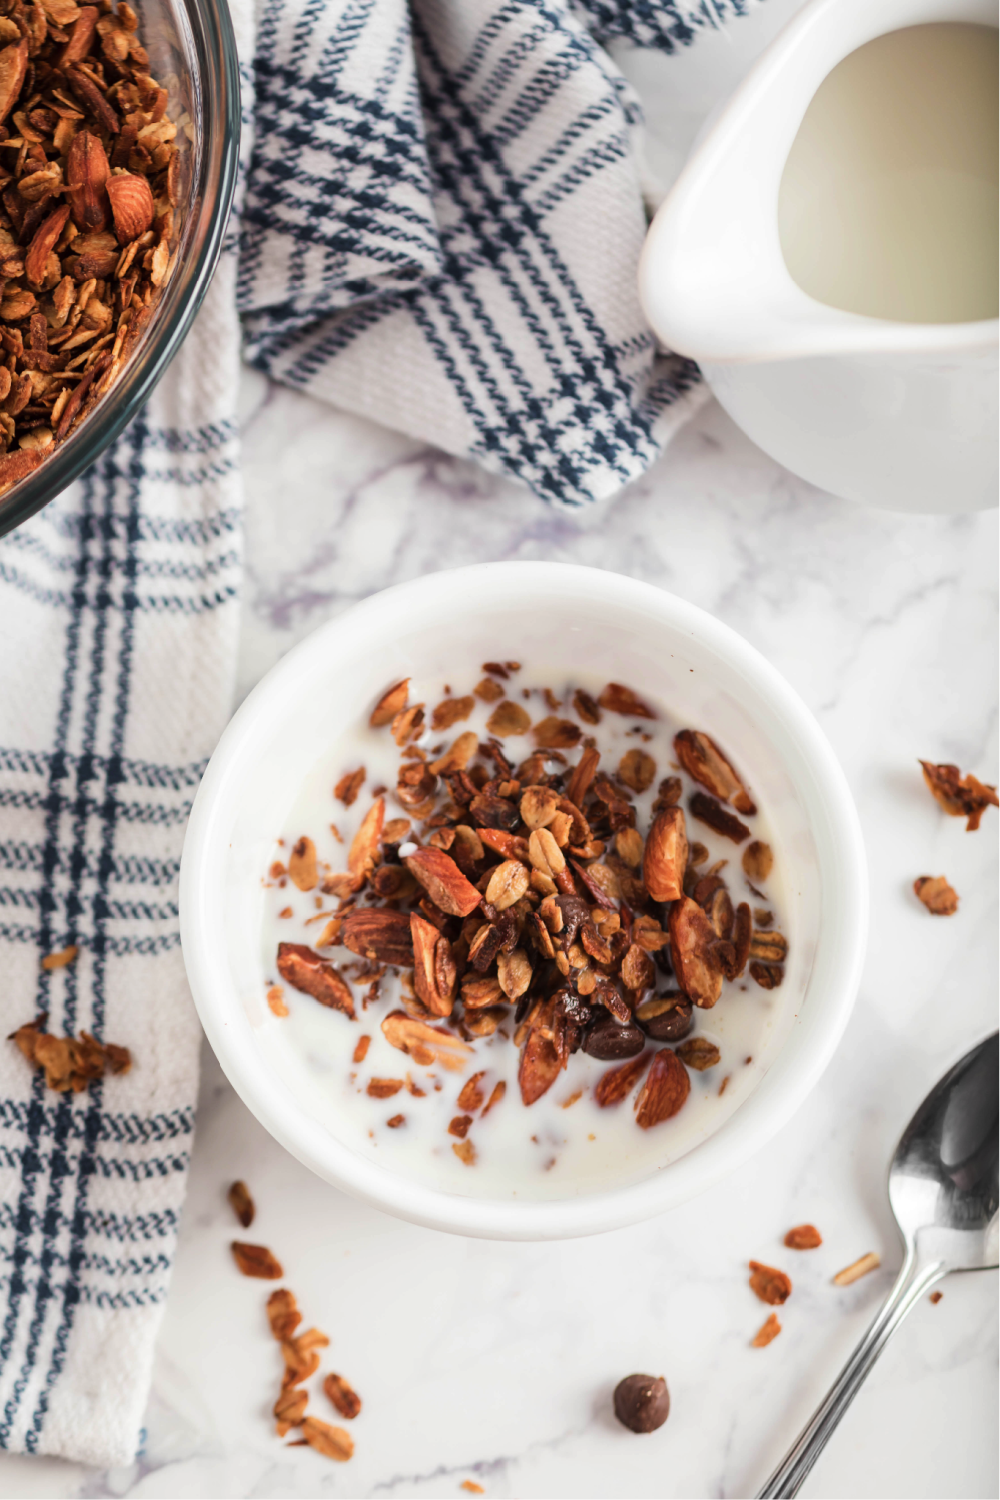 Homemade Granola in bowl with milk